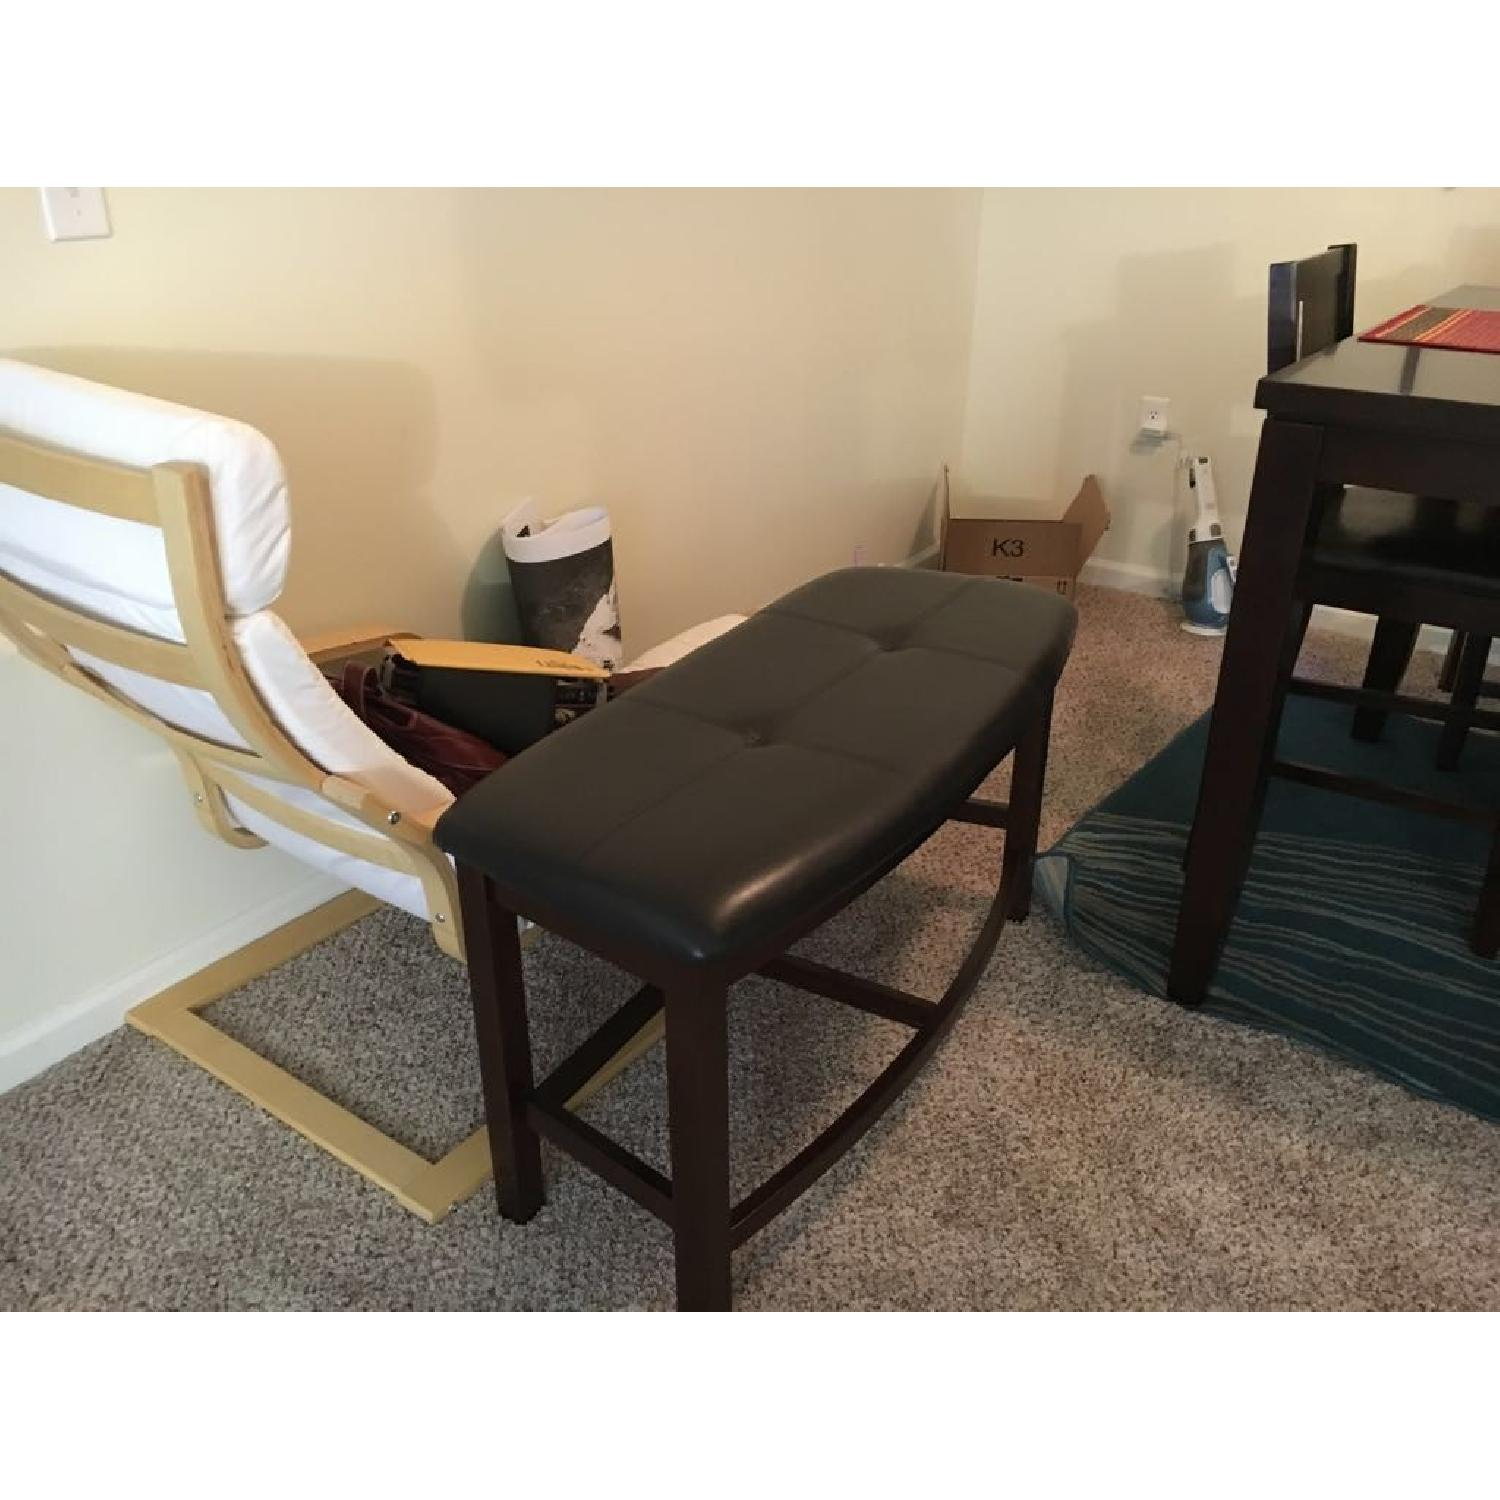 Dining Table w/ 4 Chairs + 1 Bench - image-7